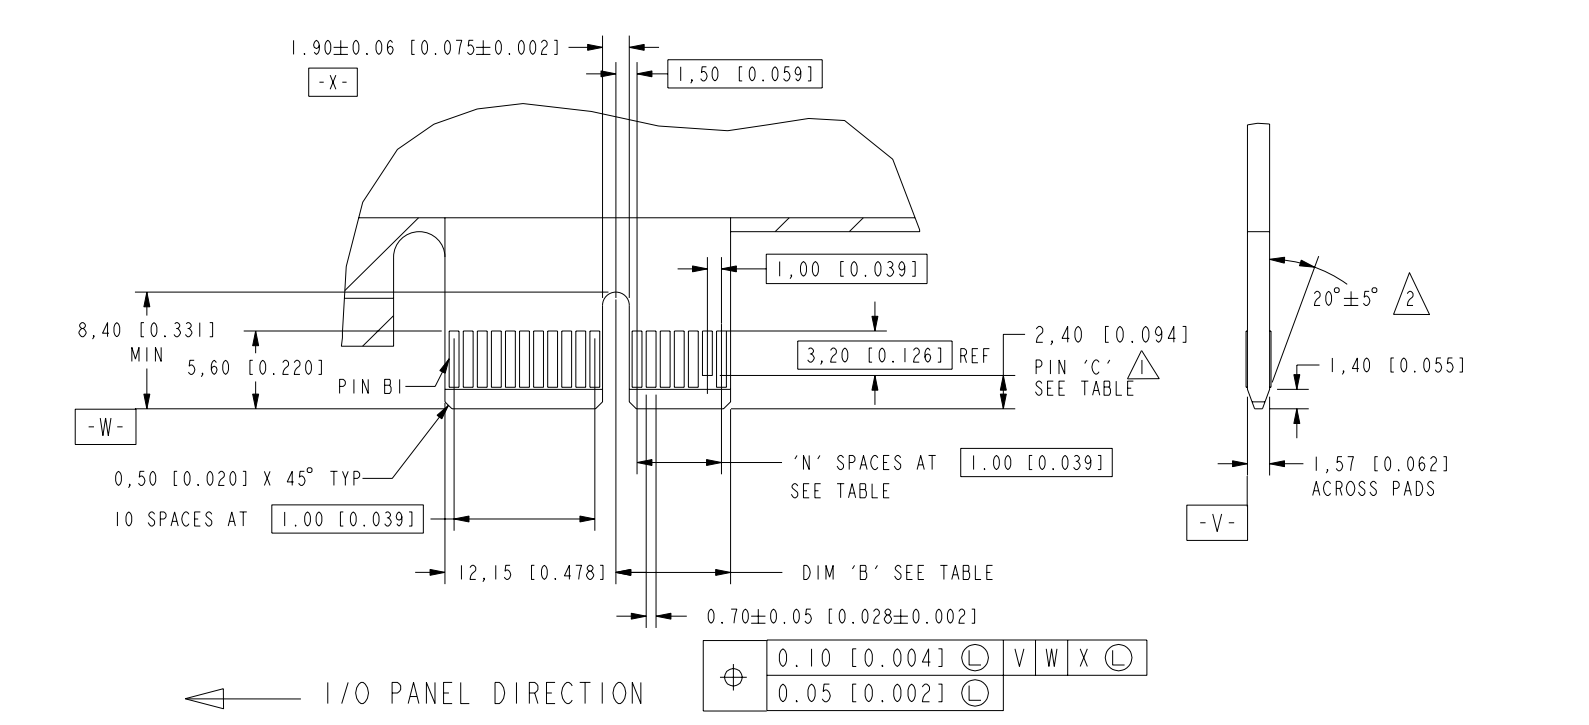 Pci express card electromechanical specification 3.0 pdf